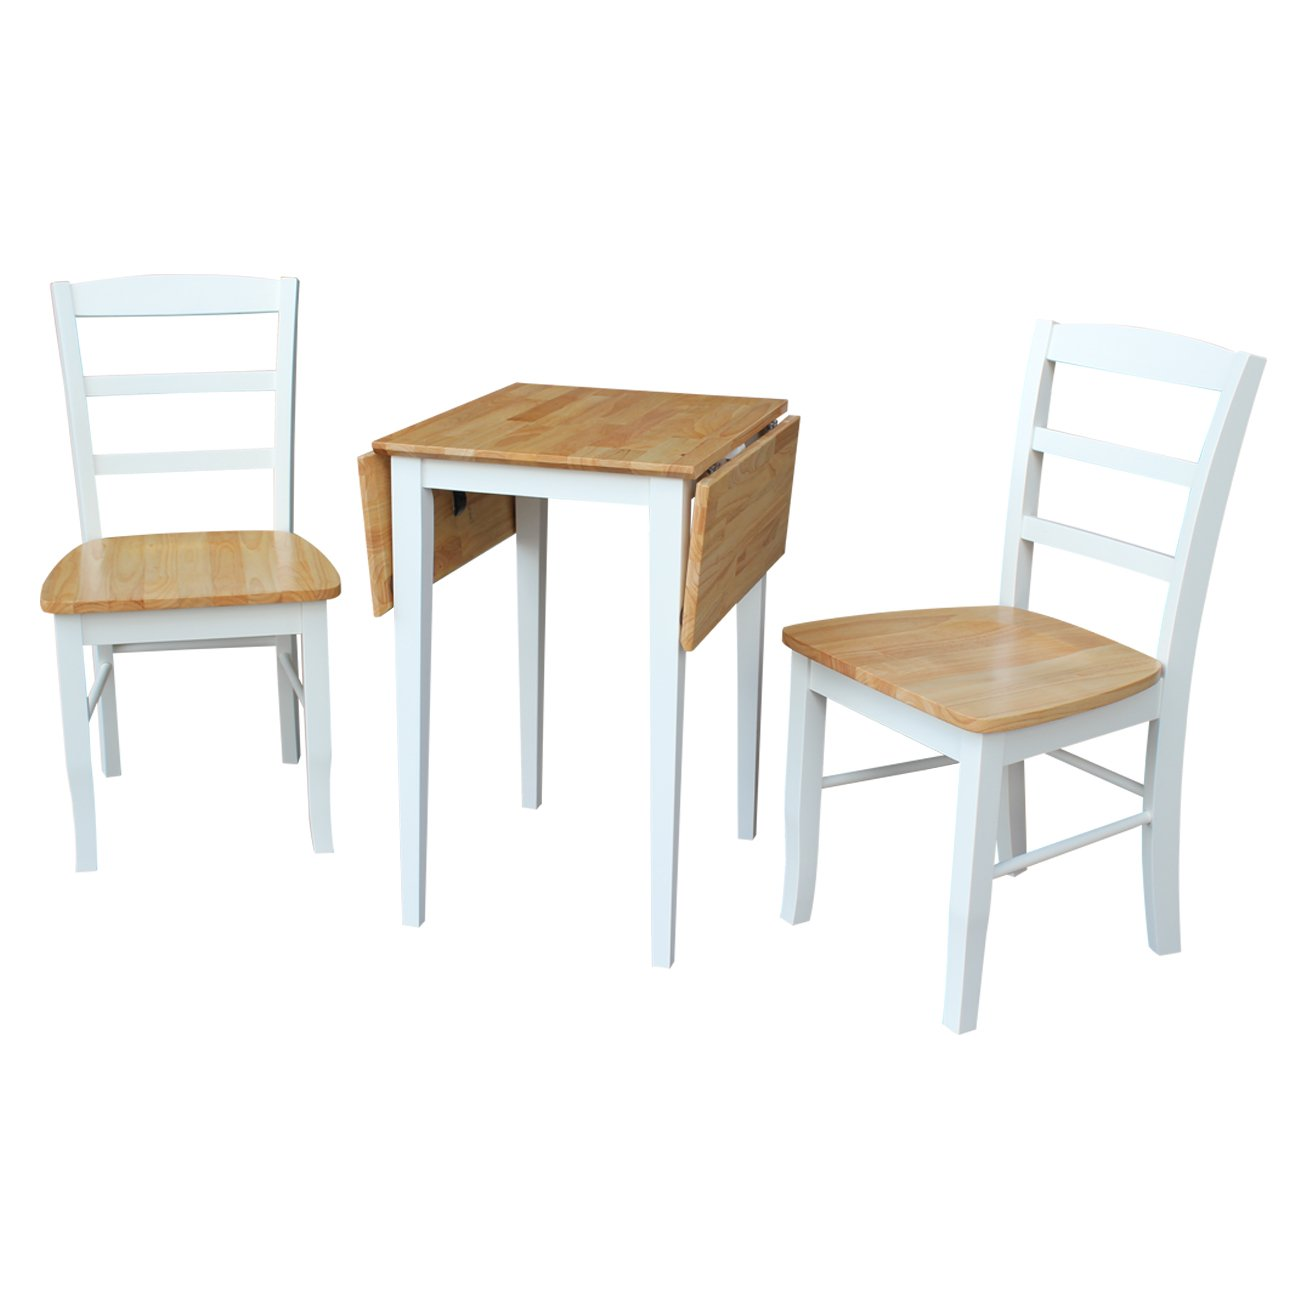 InternationalConcepts K02-2236D-C2 Small Dual Drop Leaf Table with 2 Madrid Ladderback Chairs - 3 Pieces, White & Natural